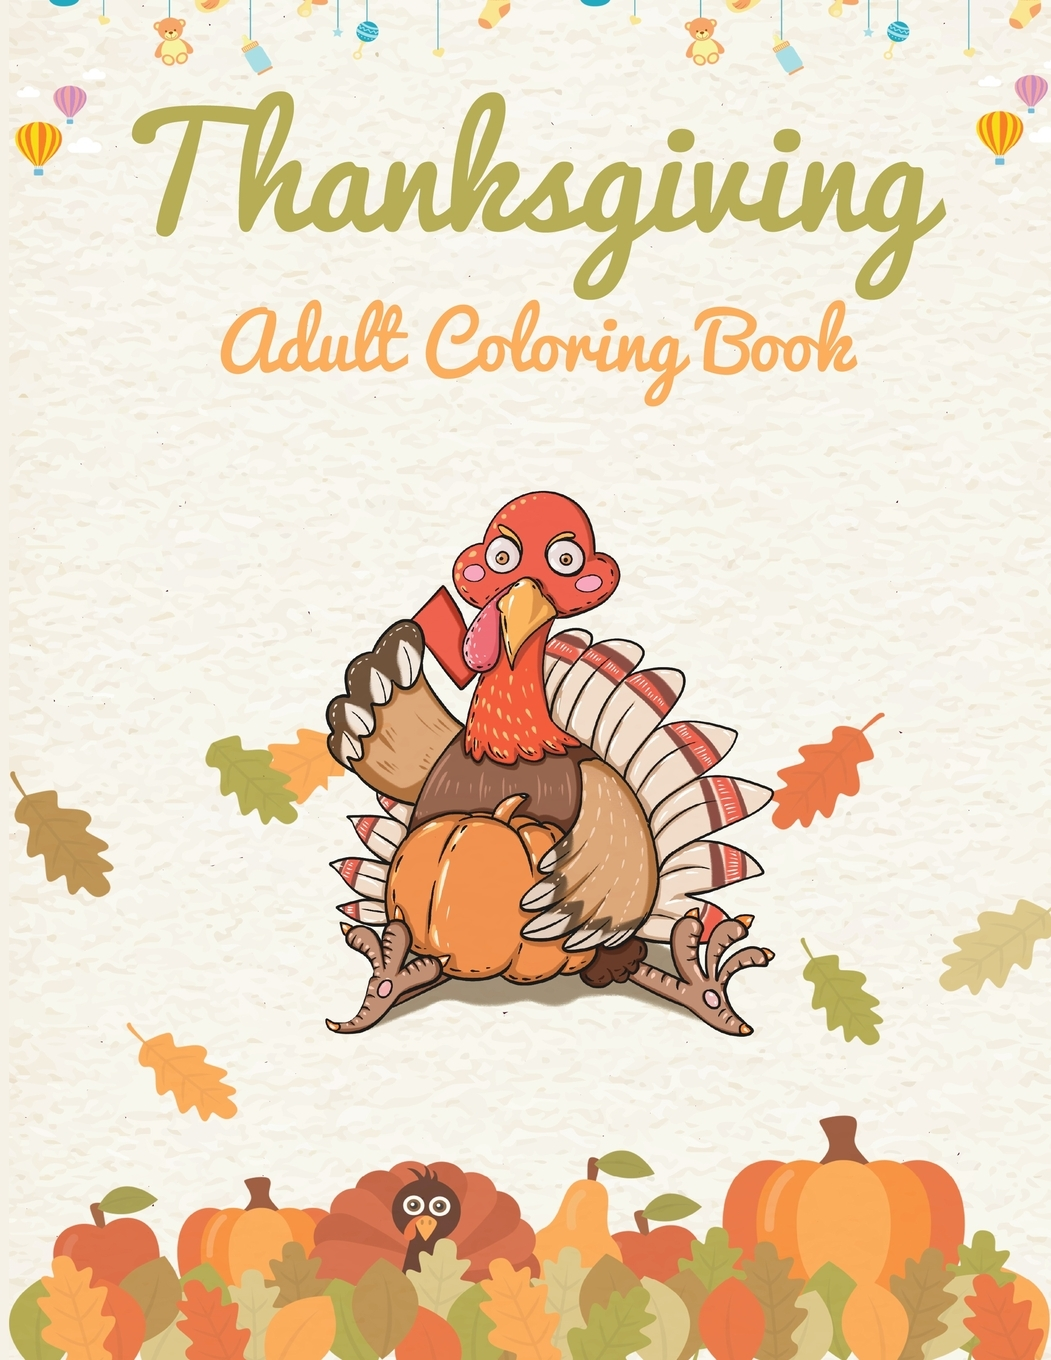 - Thanksgiving Adult Coloring Book : A Big Book Of Easy Stress Relieving  Coloring Pages For Kids, Teens, Adults And Seniors (Thanksgiving Coloring  Activity Books) (Paperback) - Walmart.com - Walmart.com